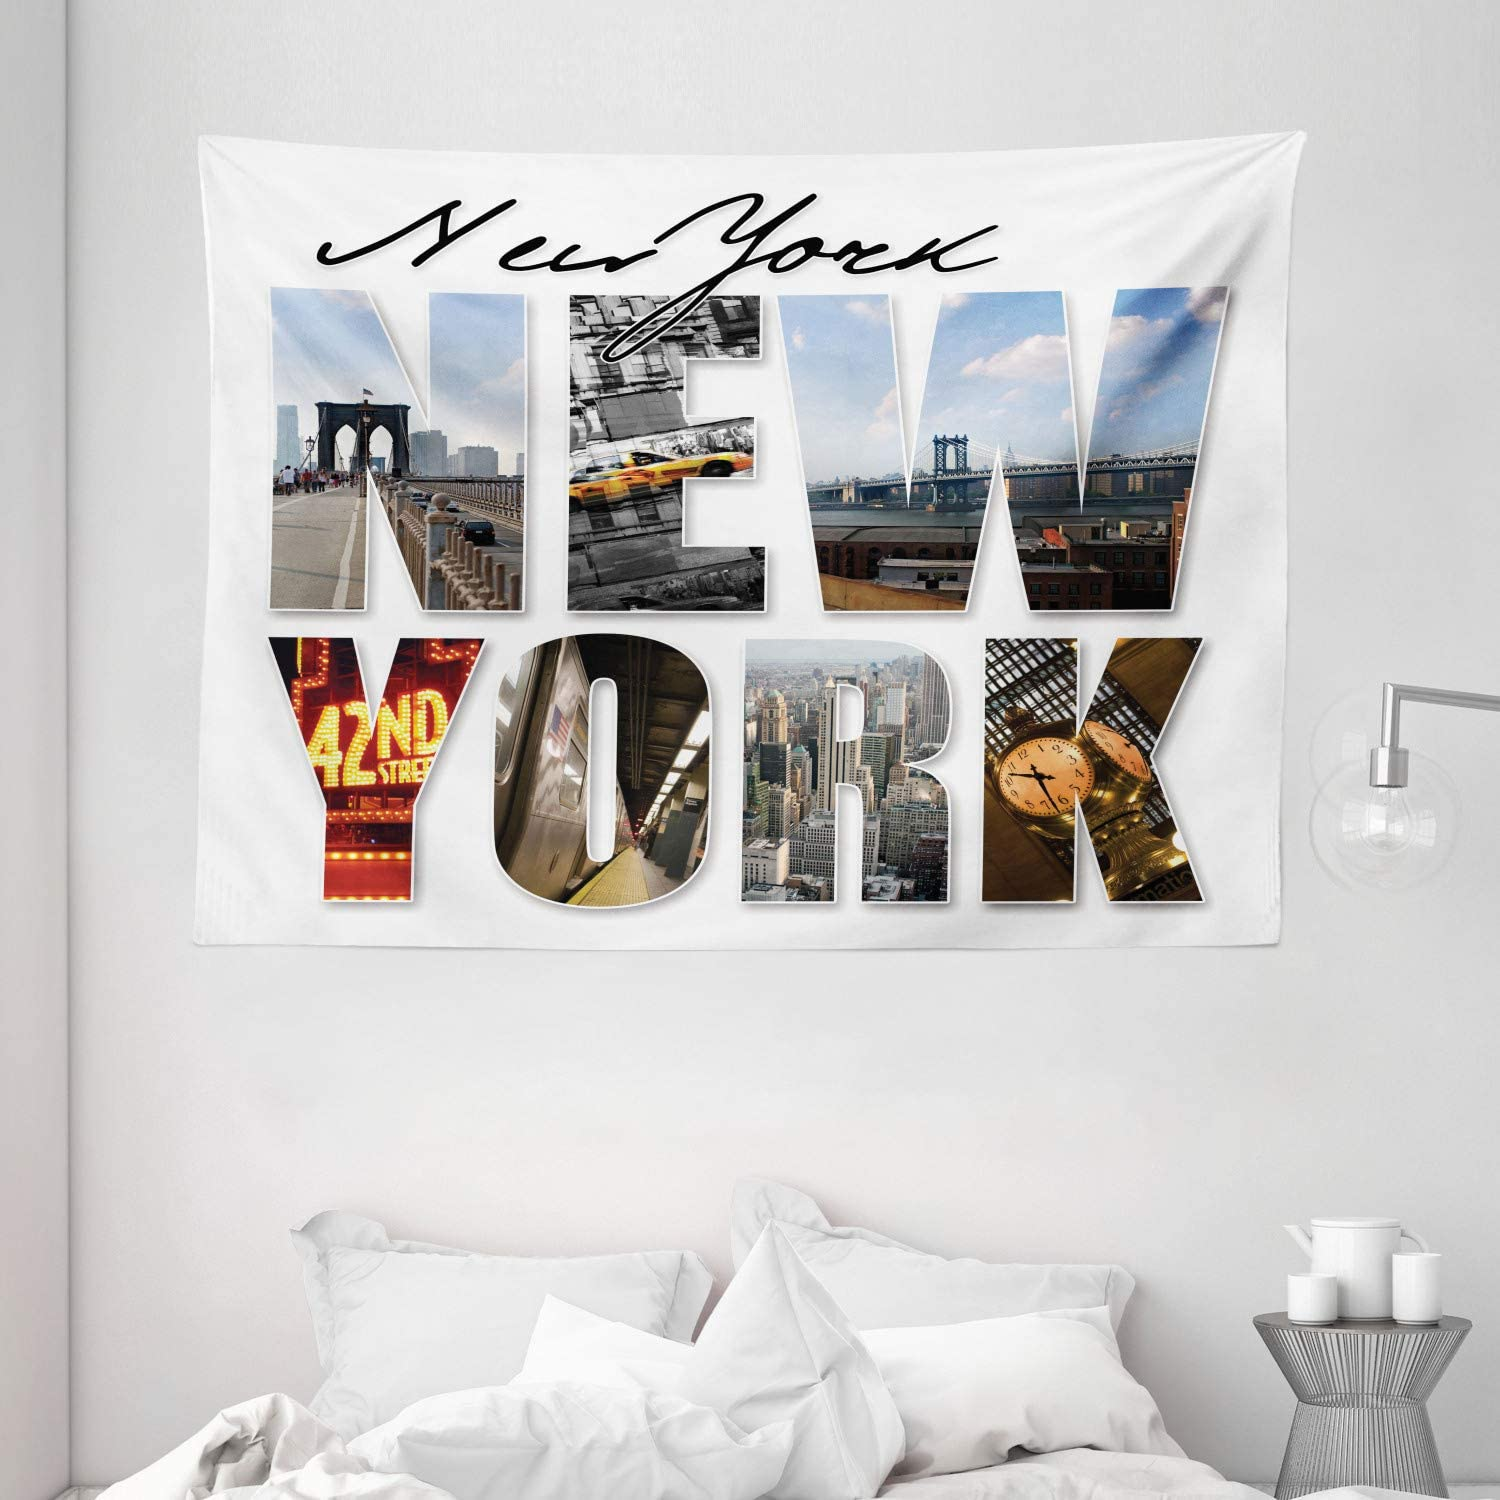 Amazon Com Ambesonne Nyc Decor Collection New York City Themed Collage Featuring With Different Areas Of The Big Apple Manhattan Scenery Bedroom Living Room Dorm Wall Hanging Tapestry 80 X 60 Inches Multi